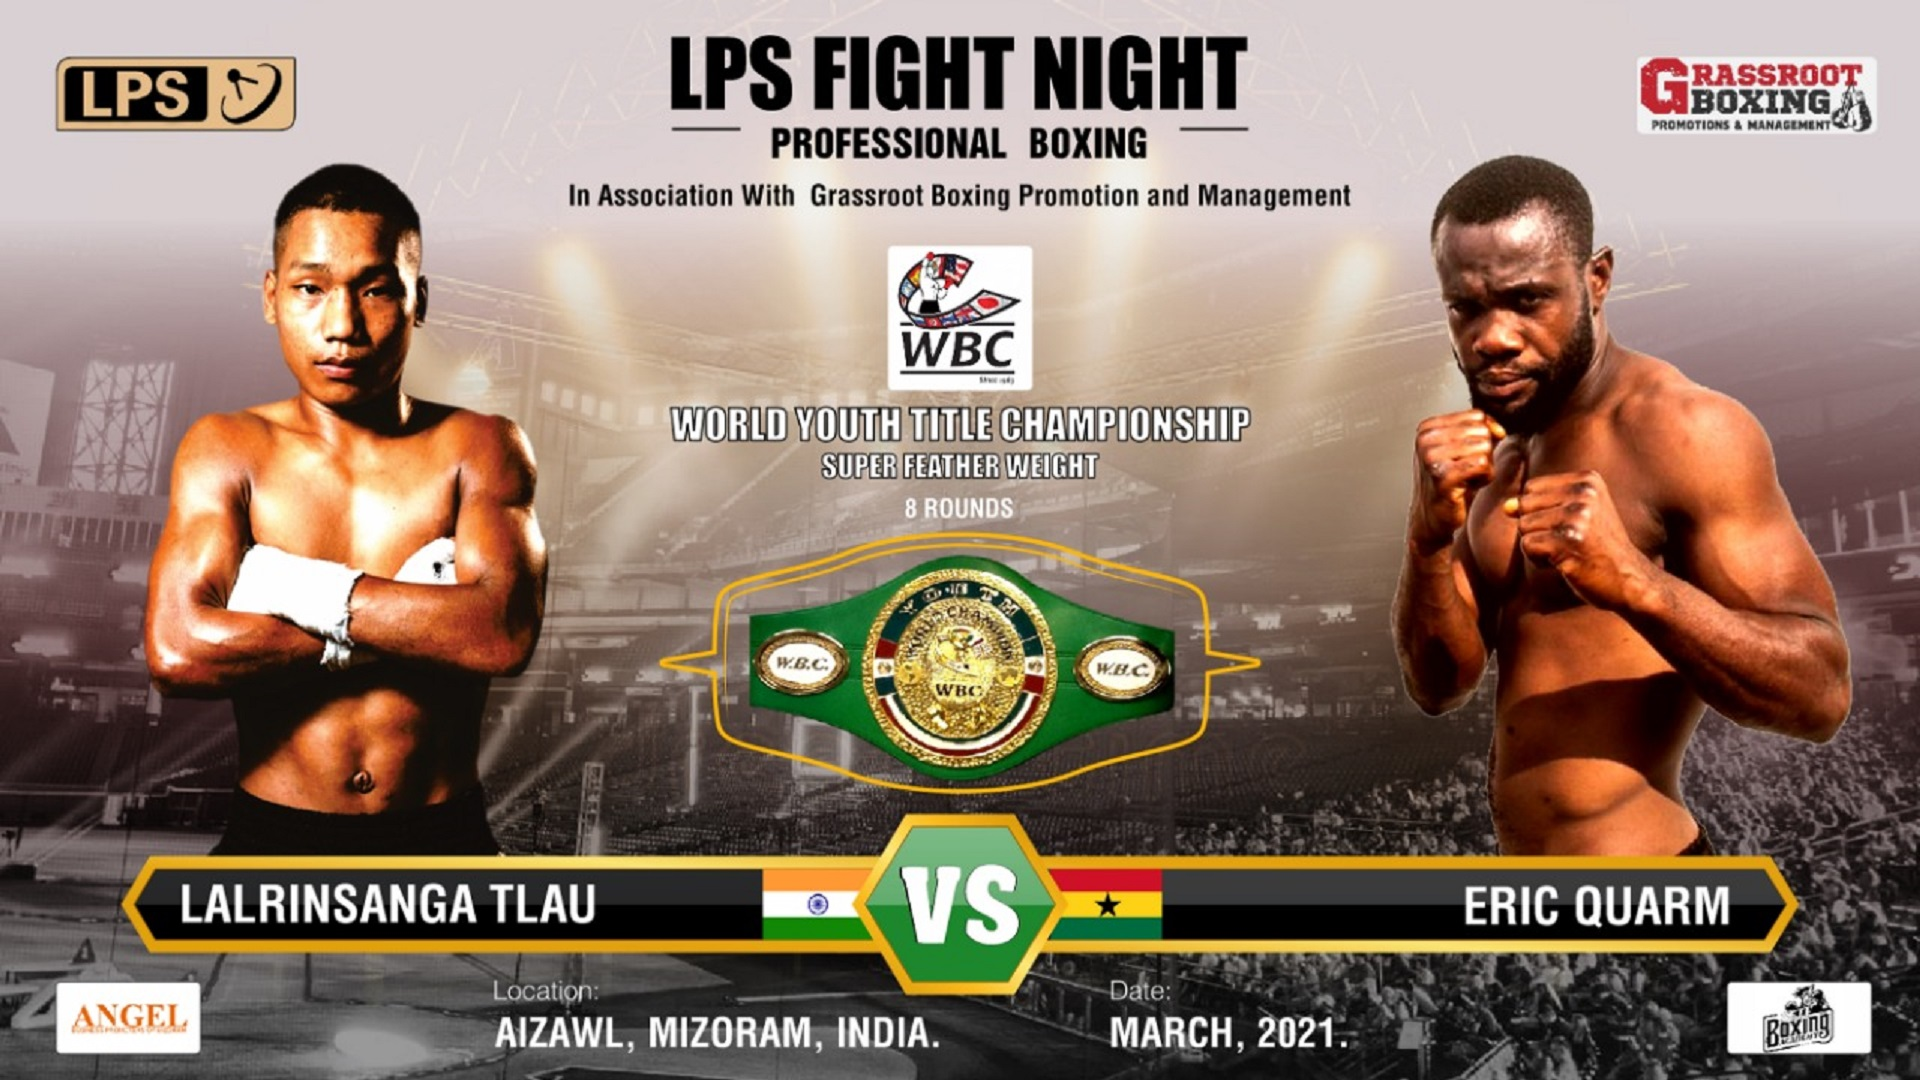 https://lockerroom.in/blog/view/Lalrinsanga-Tlau-LPS-Fight-Night-Eric-Quarm-Mizoram